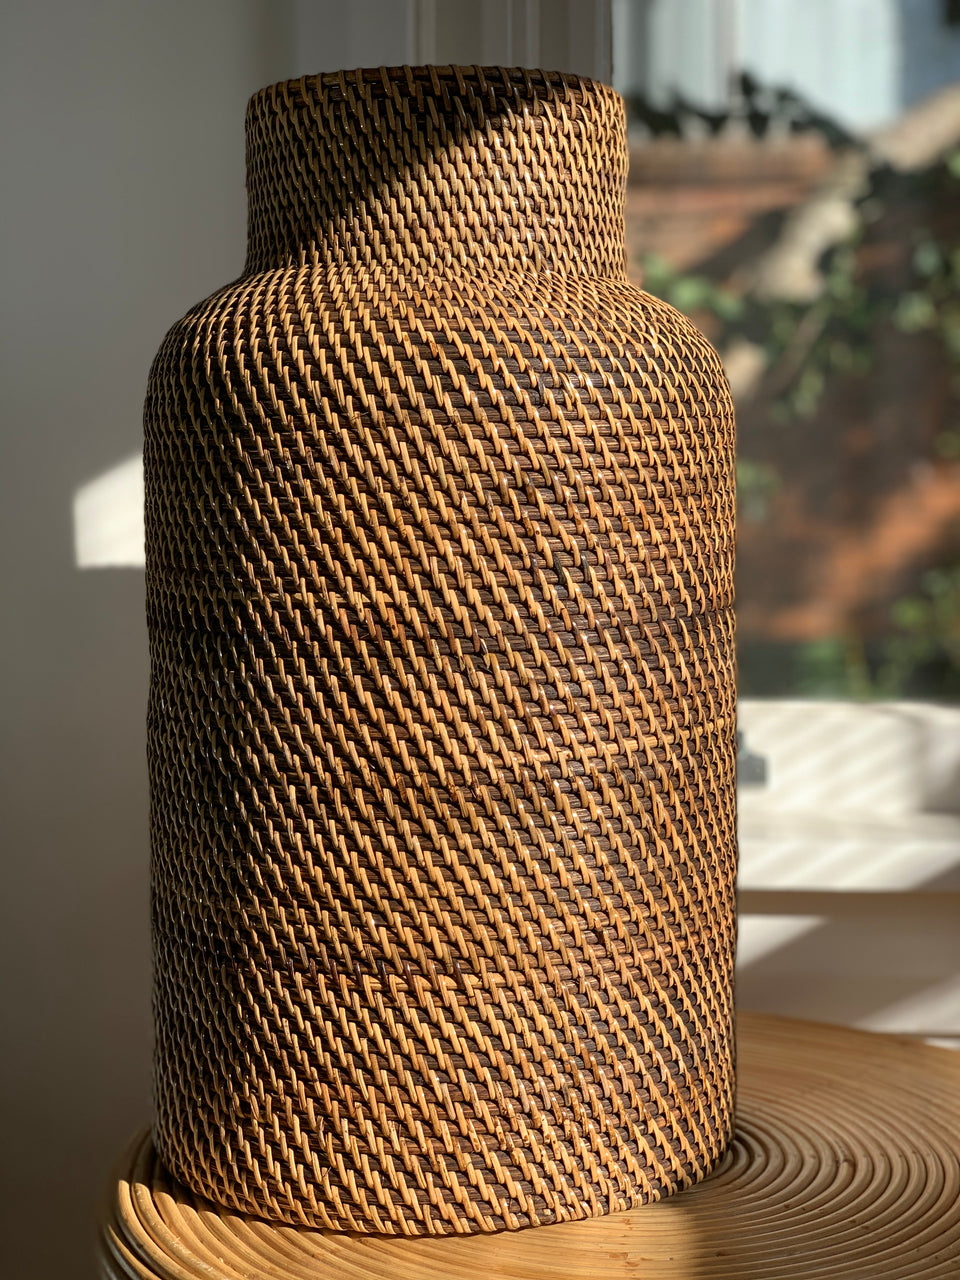 Rattan Vase / Umbrella Holder - Antiqued Rattan